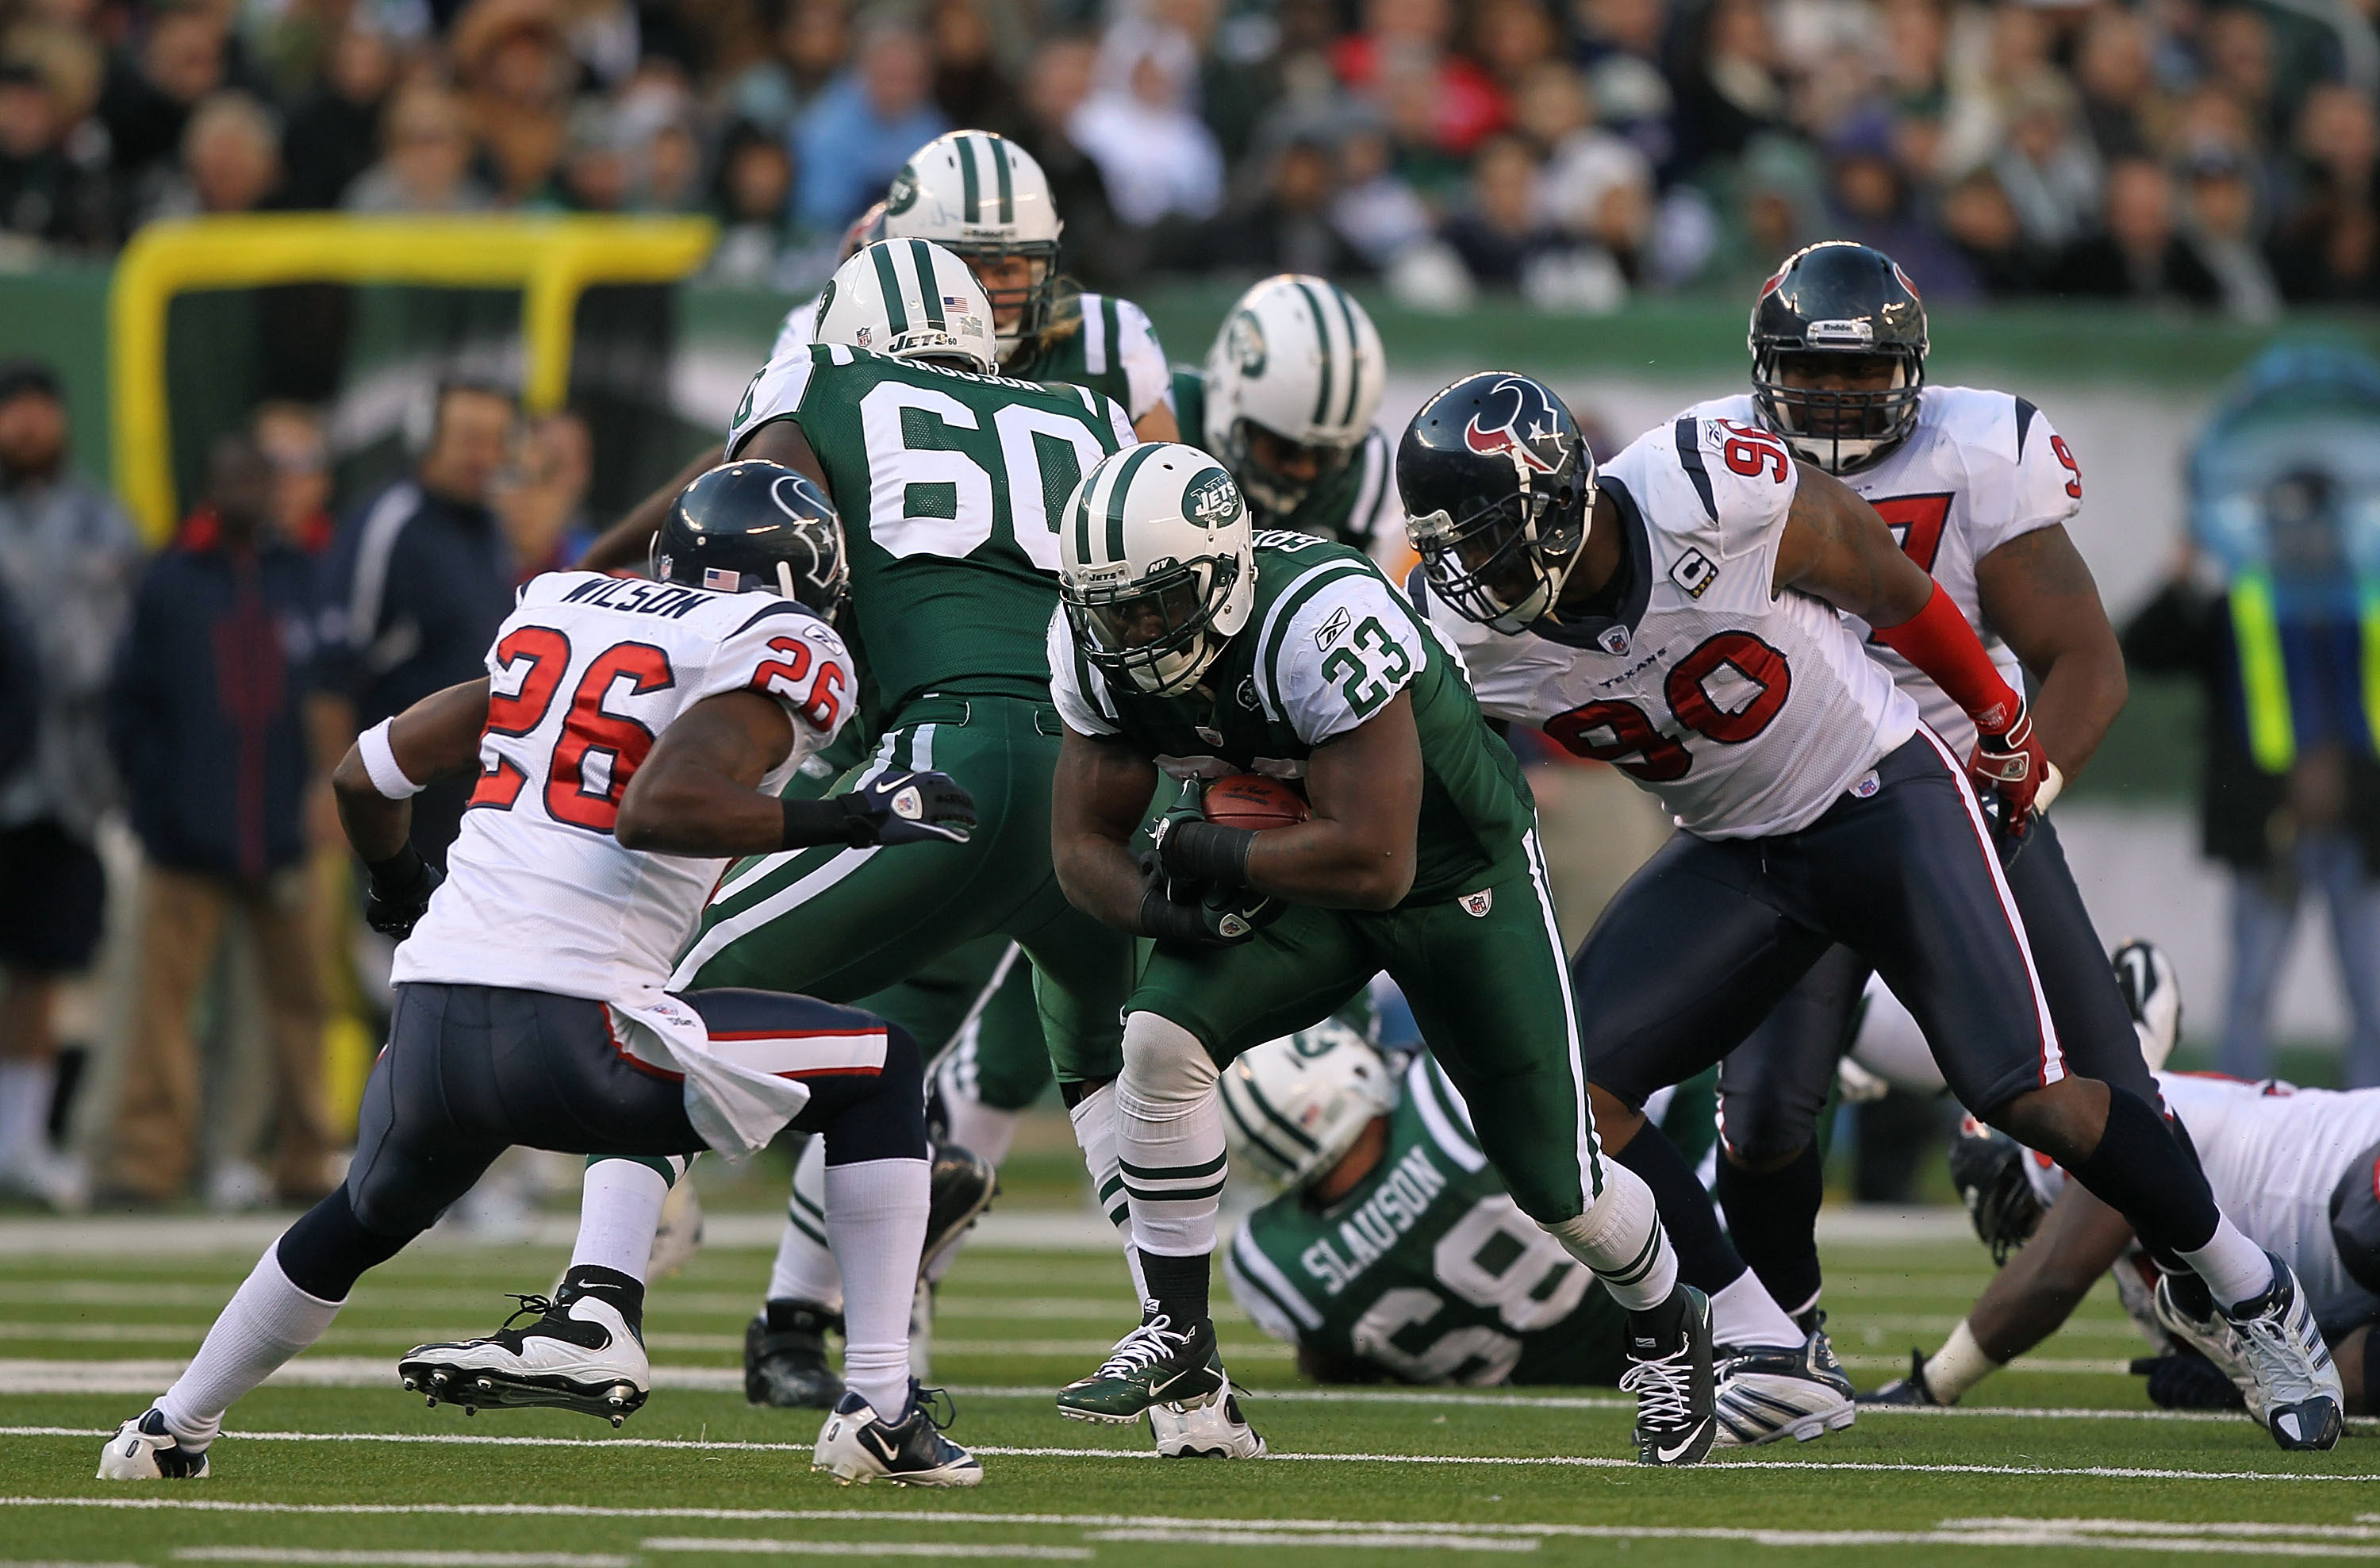 EAST RUTHERFORD, NJ - NOVEMBER 21:  Shonn Greene #23 of the New York Jets runs against Eugene Wilson #26 of the Houston Texans on November 21, 2010 at the New Meadowlands Stadium in East Rutherford, New Jersey.  (Photo by Al Bello/Getty Images)